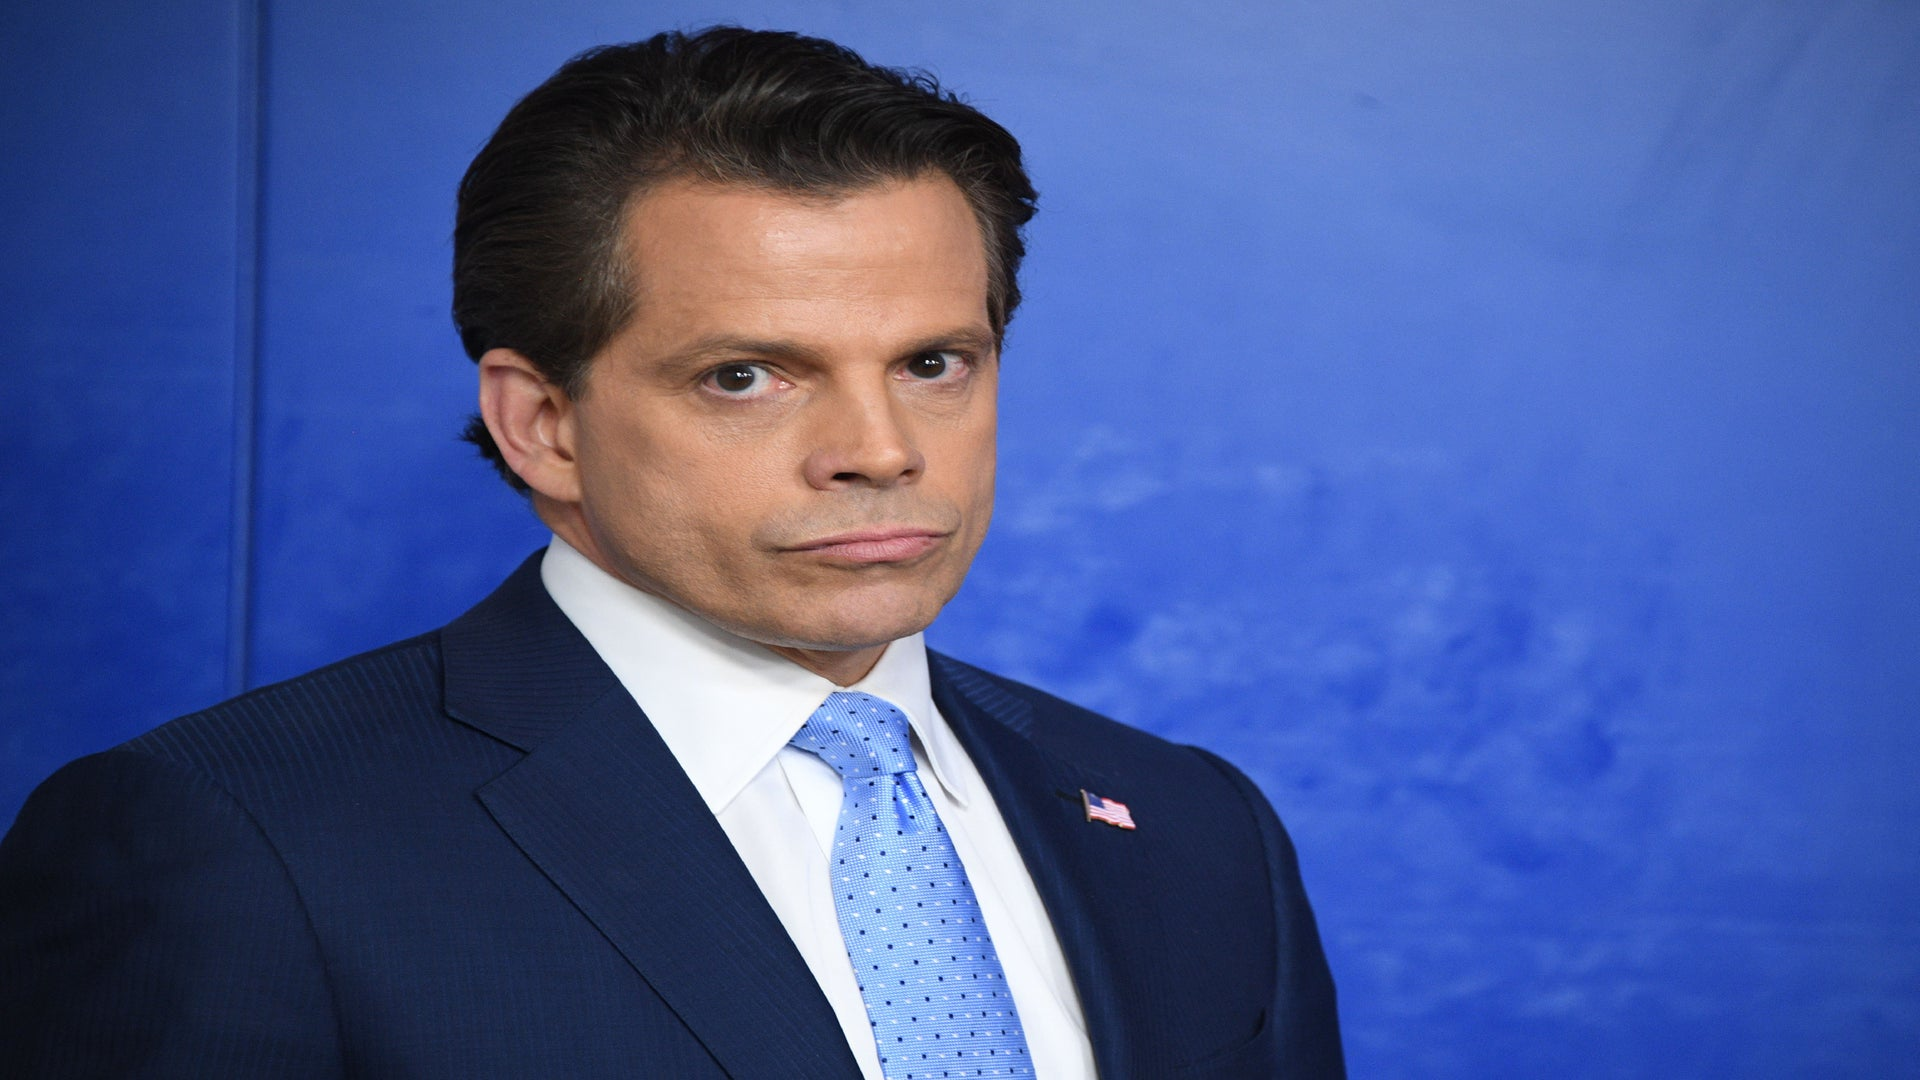 Anthony Scaramucci Thinks He Was Misunderstood. Now He Wants to Explain